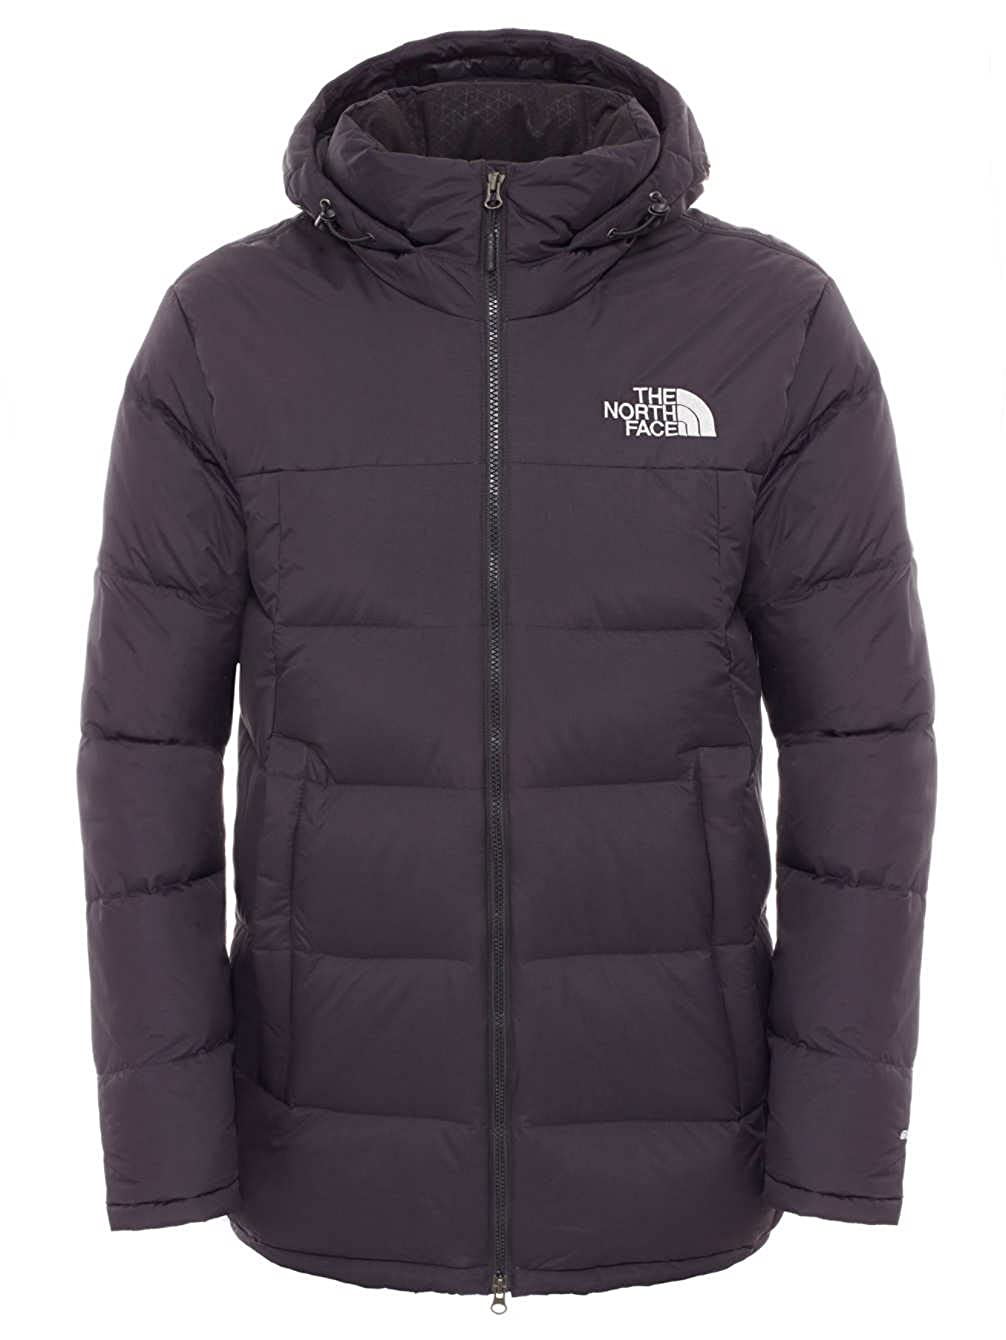 The North Face M Fossil Ridge Parka - EU - Anorak para Hombre, Color Negro, Talla M: Amazon.es: Zapatos y complementos